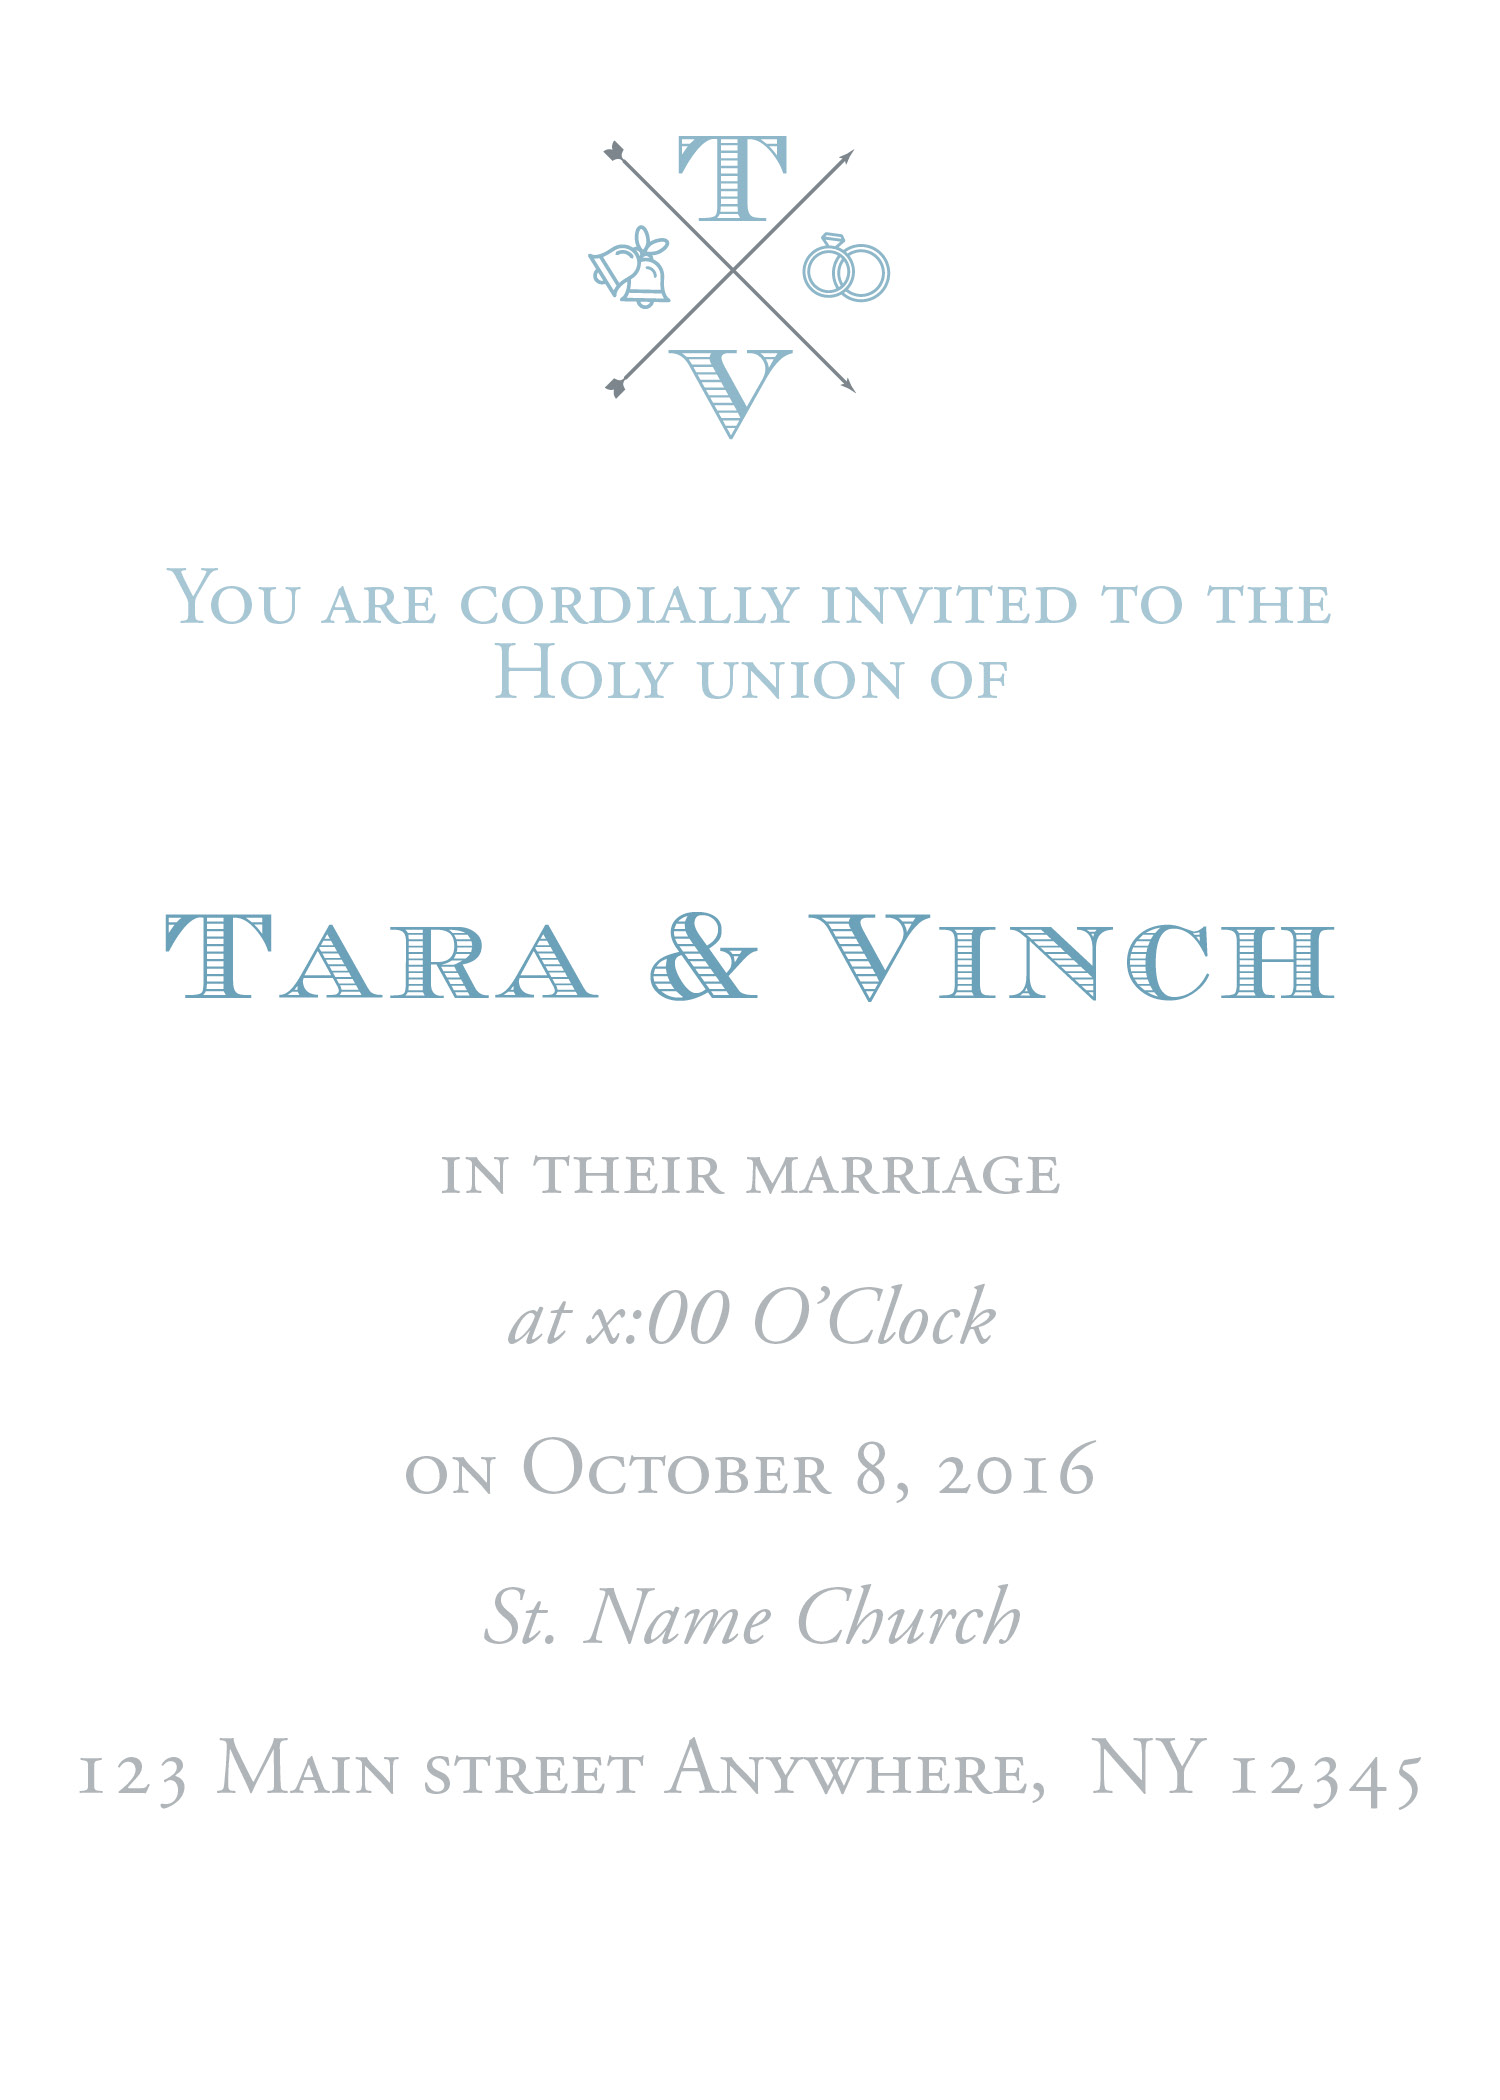 00000516_Tara_Carrozza_Wedding_Invite7.jpg